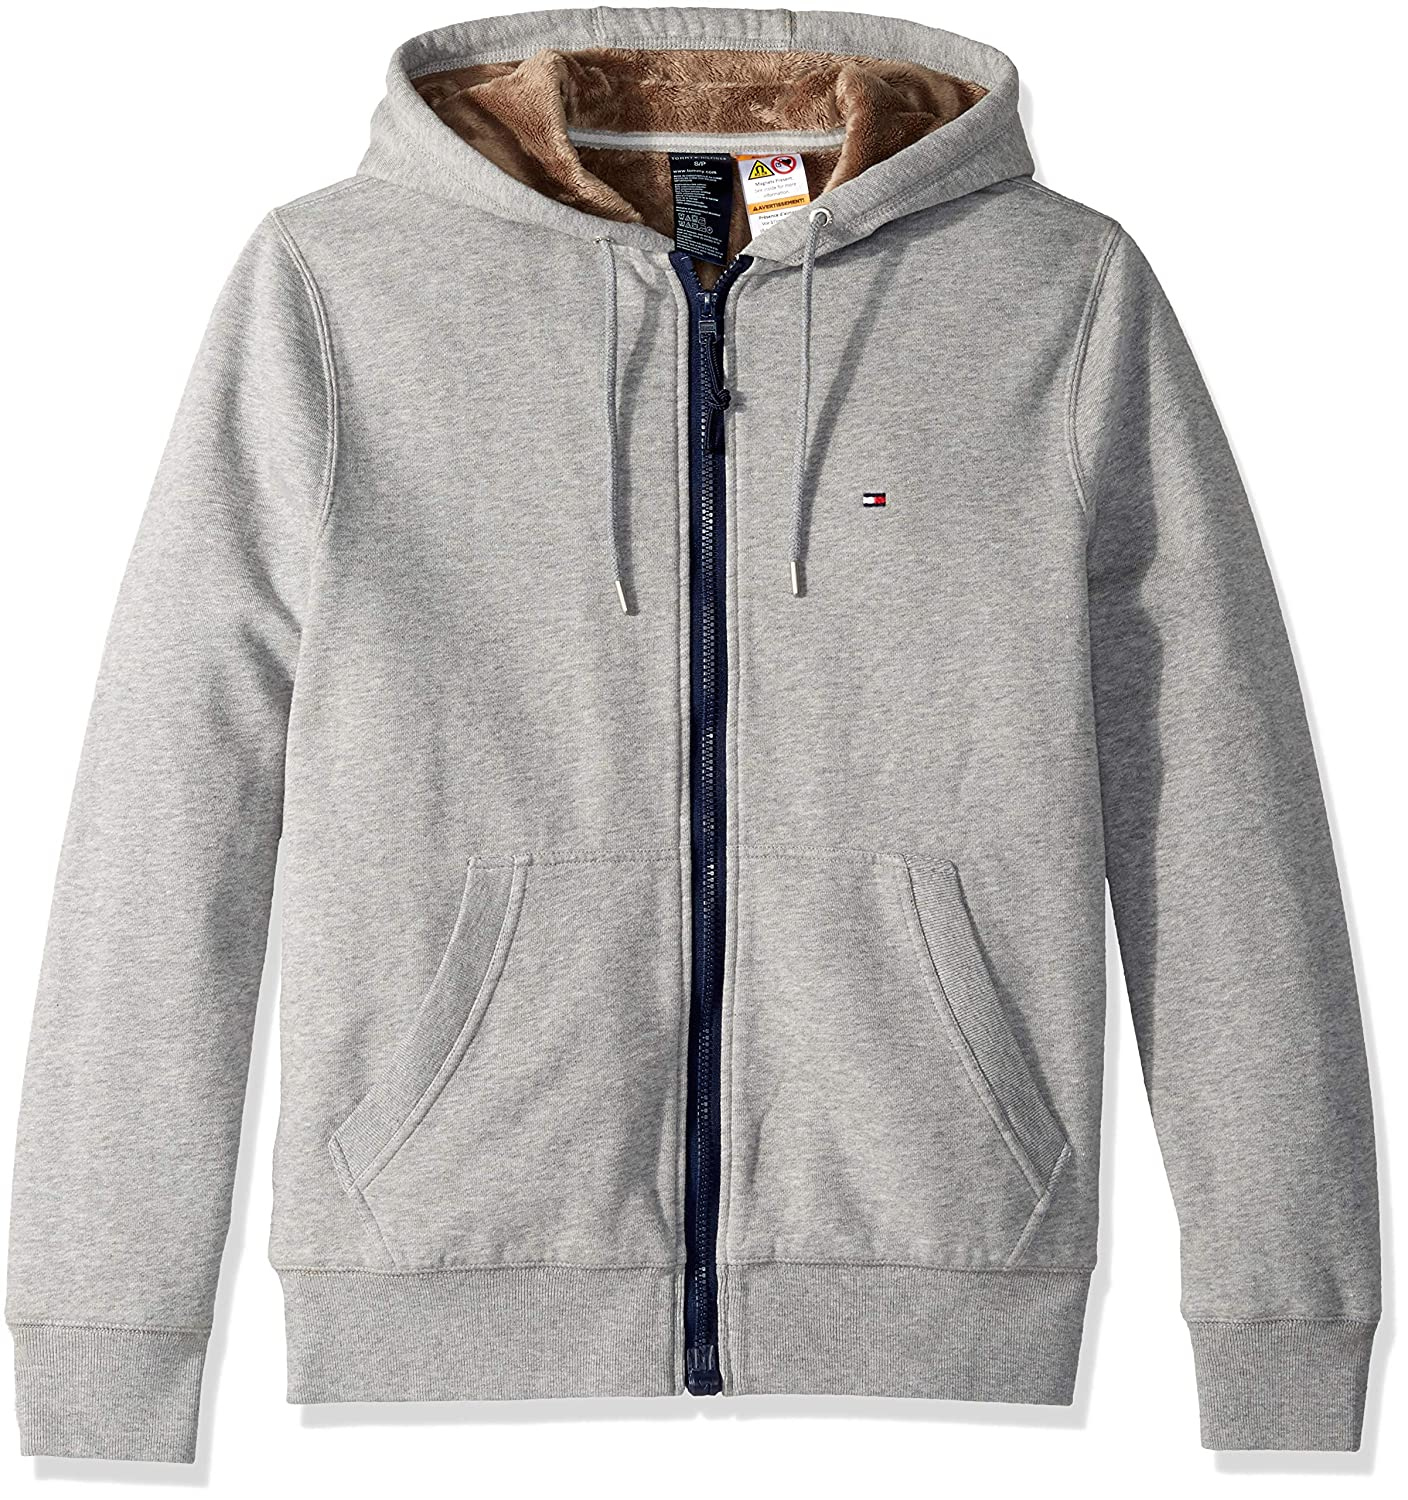 Tommy Hilfiger Men's Adaptive Hoodie with Magnetic Zipper and Fleece Lining